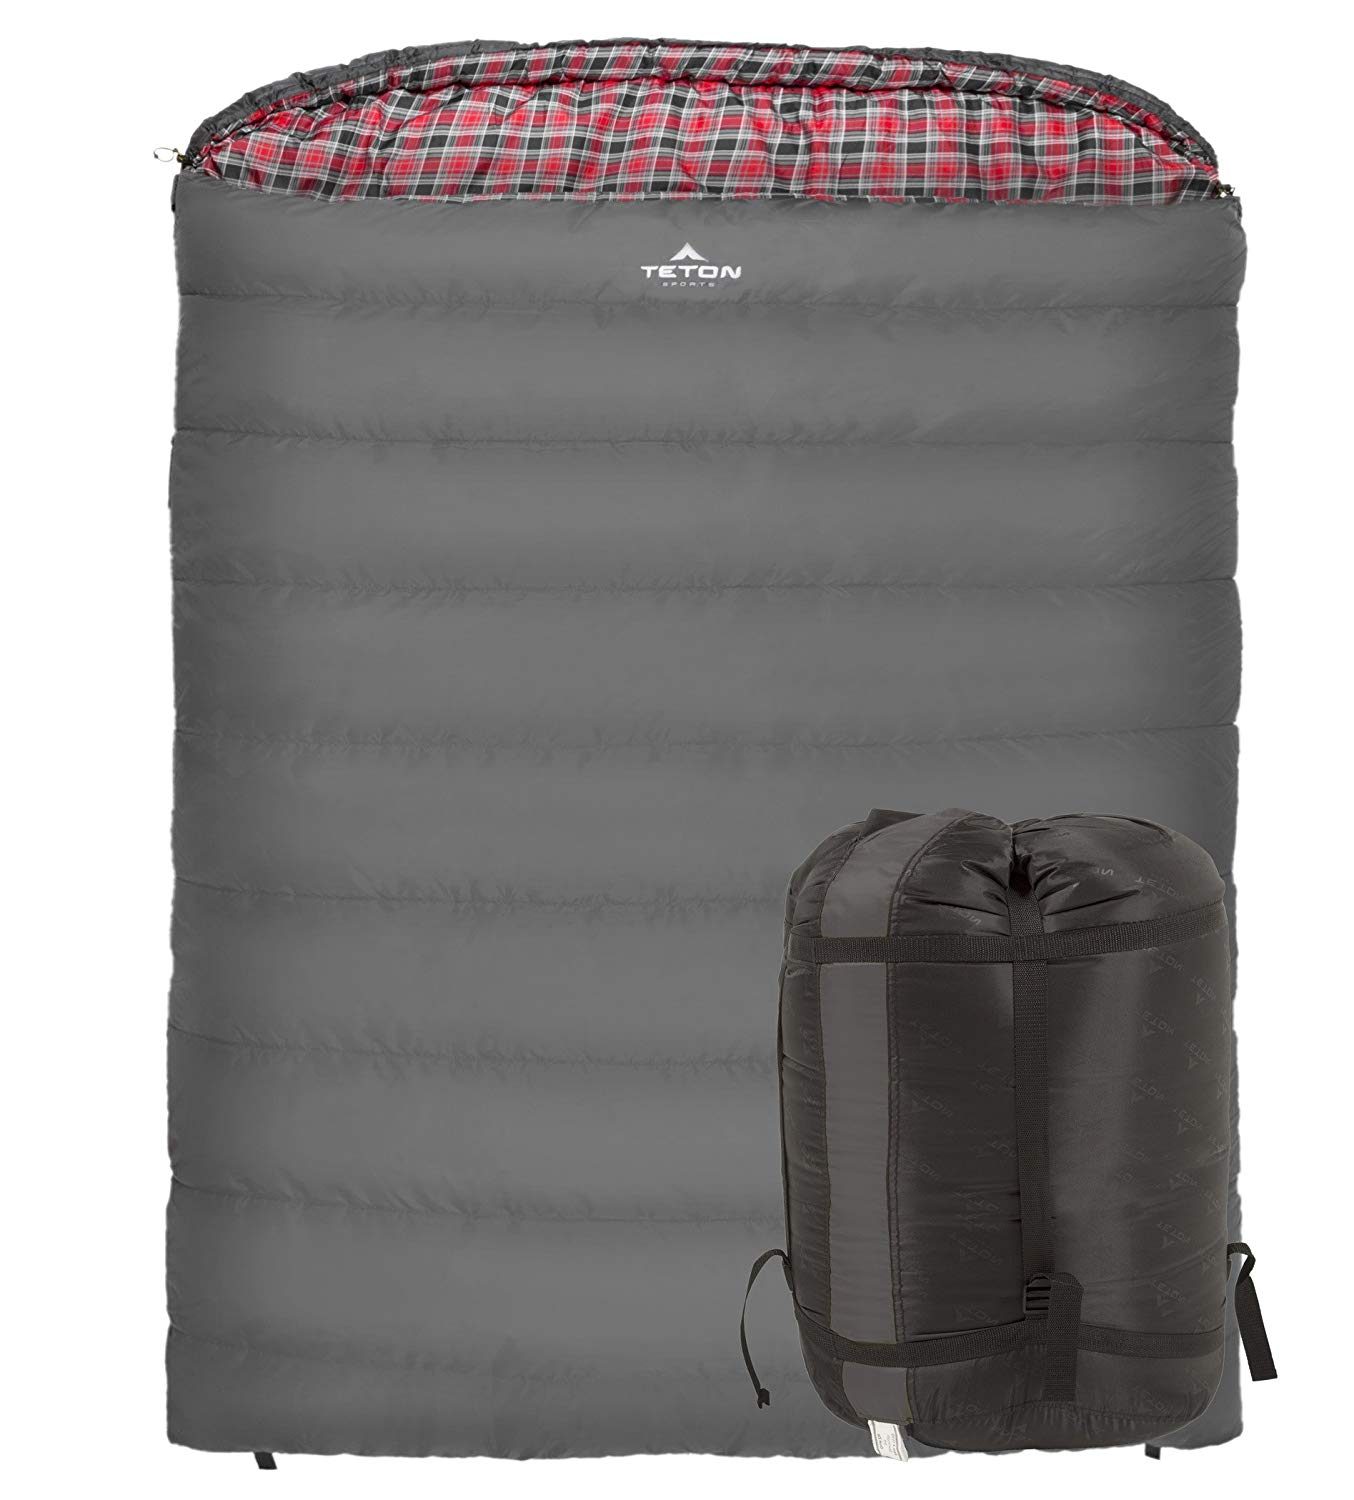 An image of Teton 110 Mammoth Gray 7 Ft. 10 in. Couple Poly-Flannel Mummy Camping Thermal Sleeping Bag